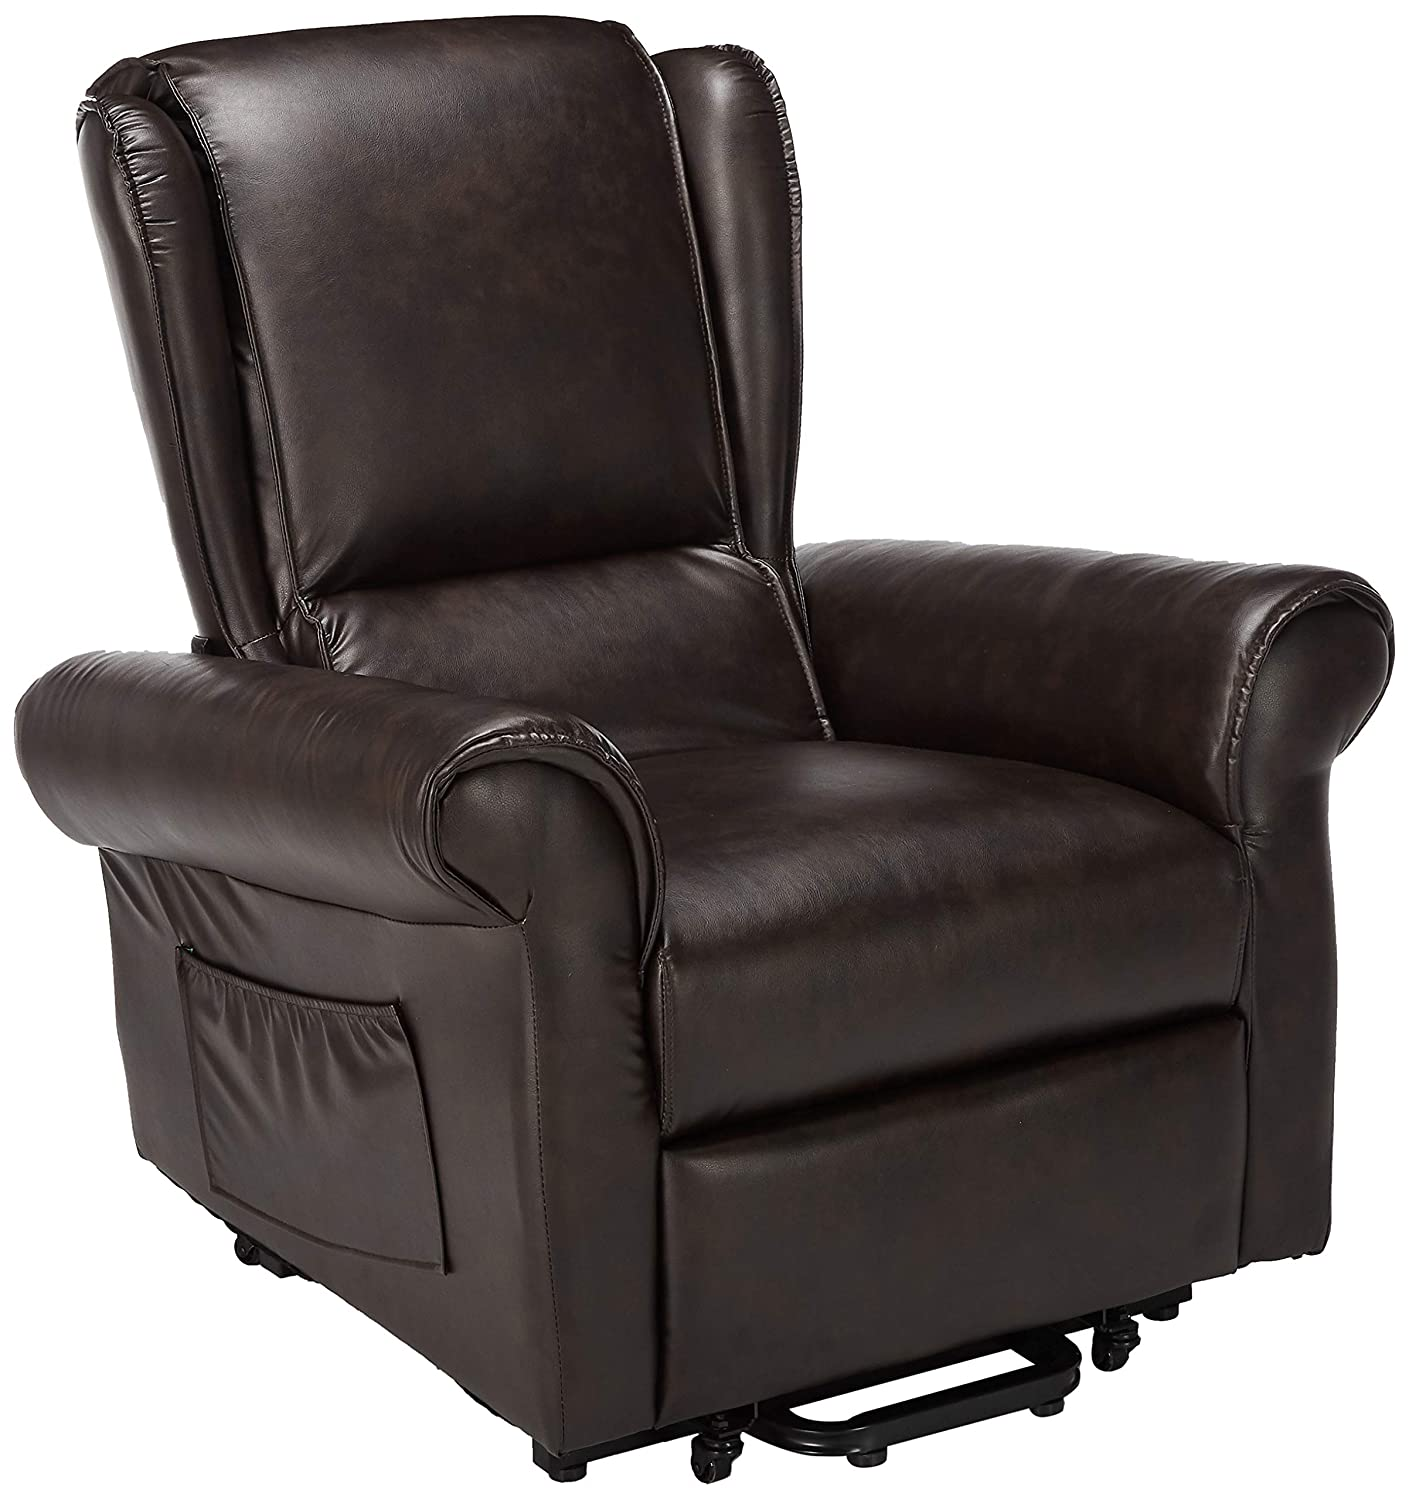 HomeRoots Furniture 285695-OT Recliner with Power Lift /& Massage Multicolor